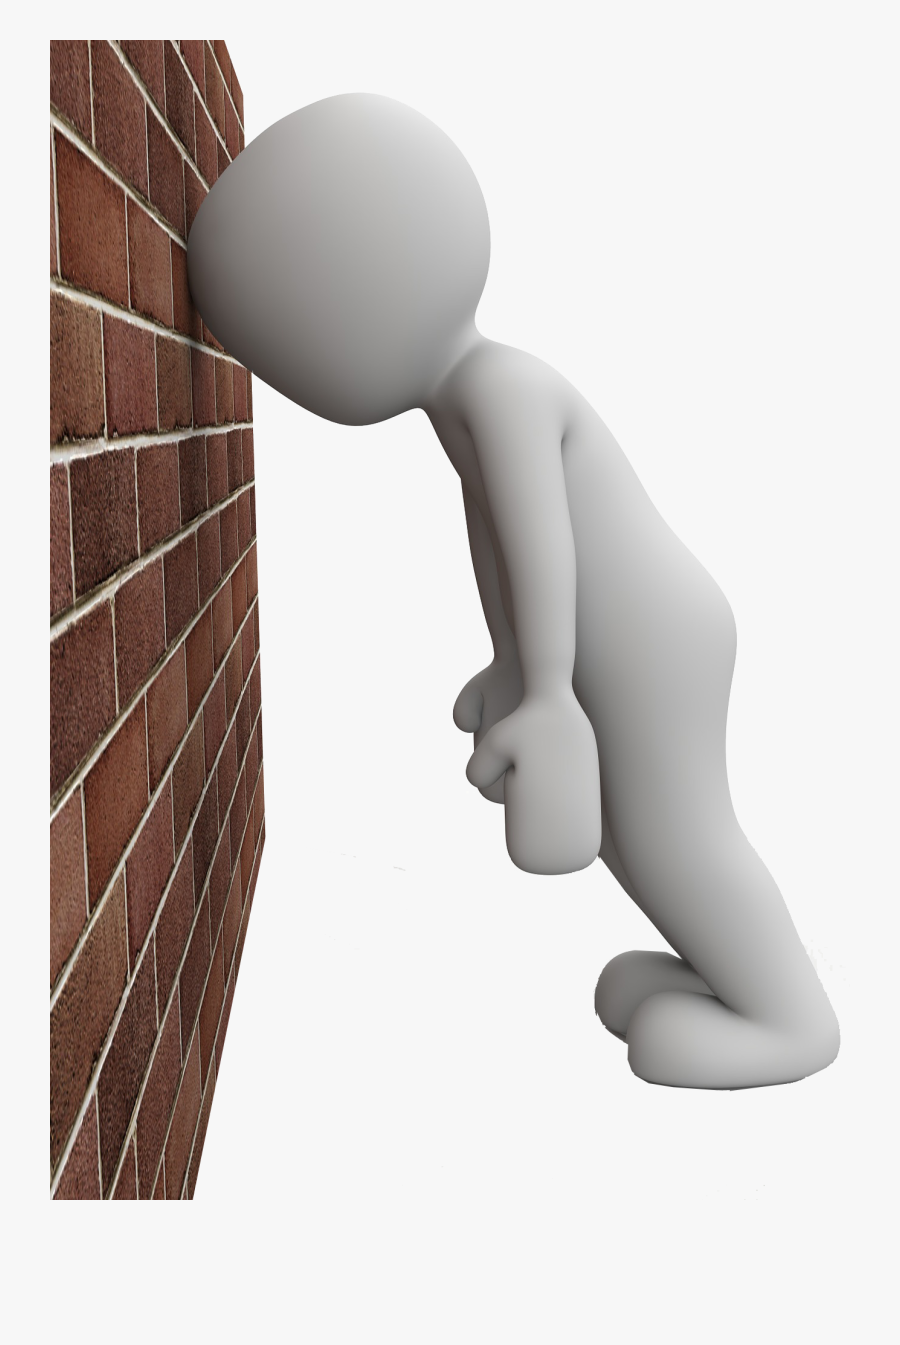 Transparent Banging Head Against Wall Clipart.